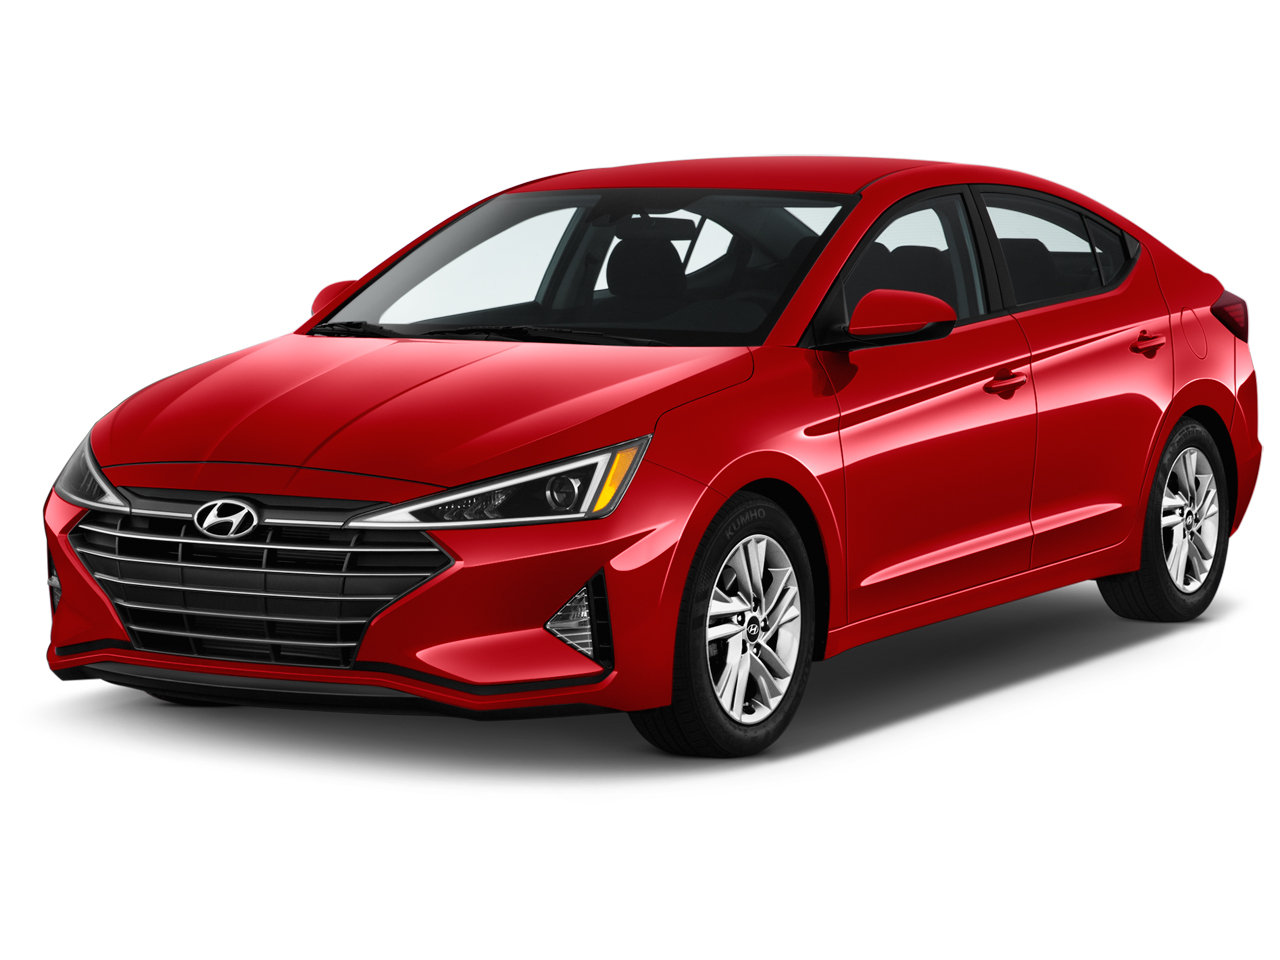 2020 Hyundai Elantra Review.2020 Hyundai Elantra Review Ratings Specs Prices And